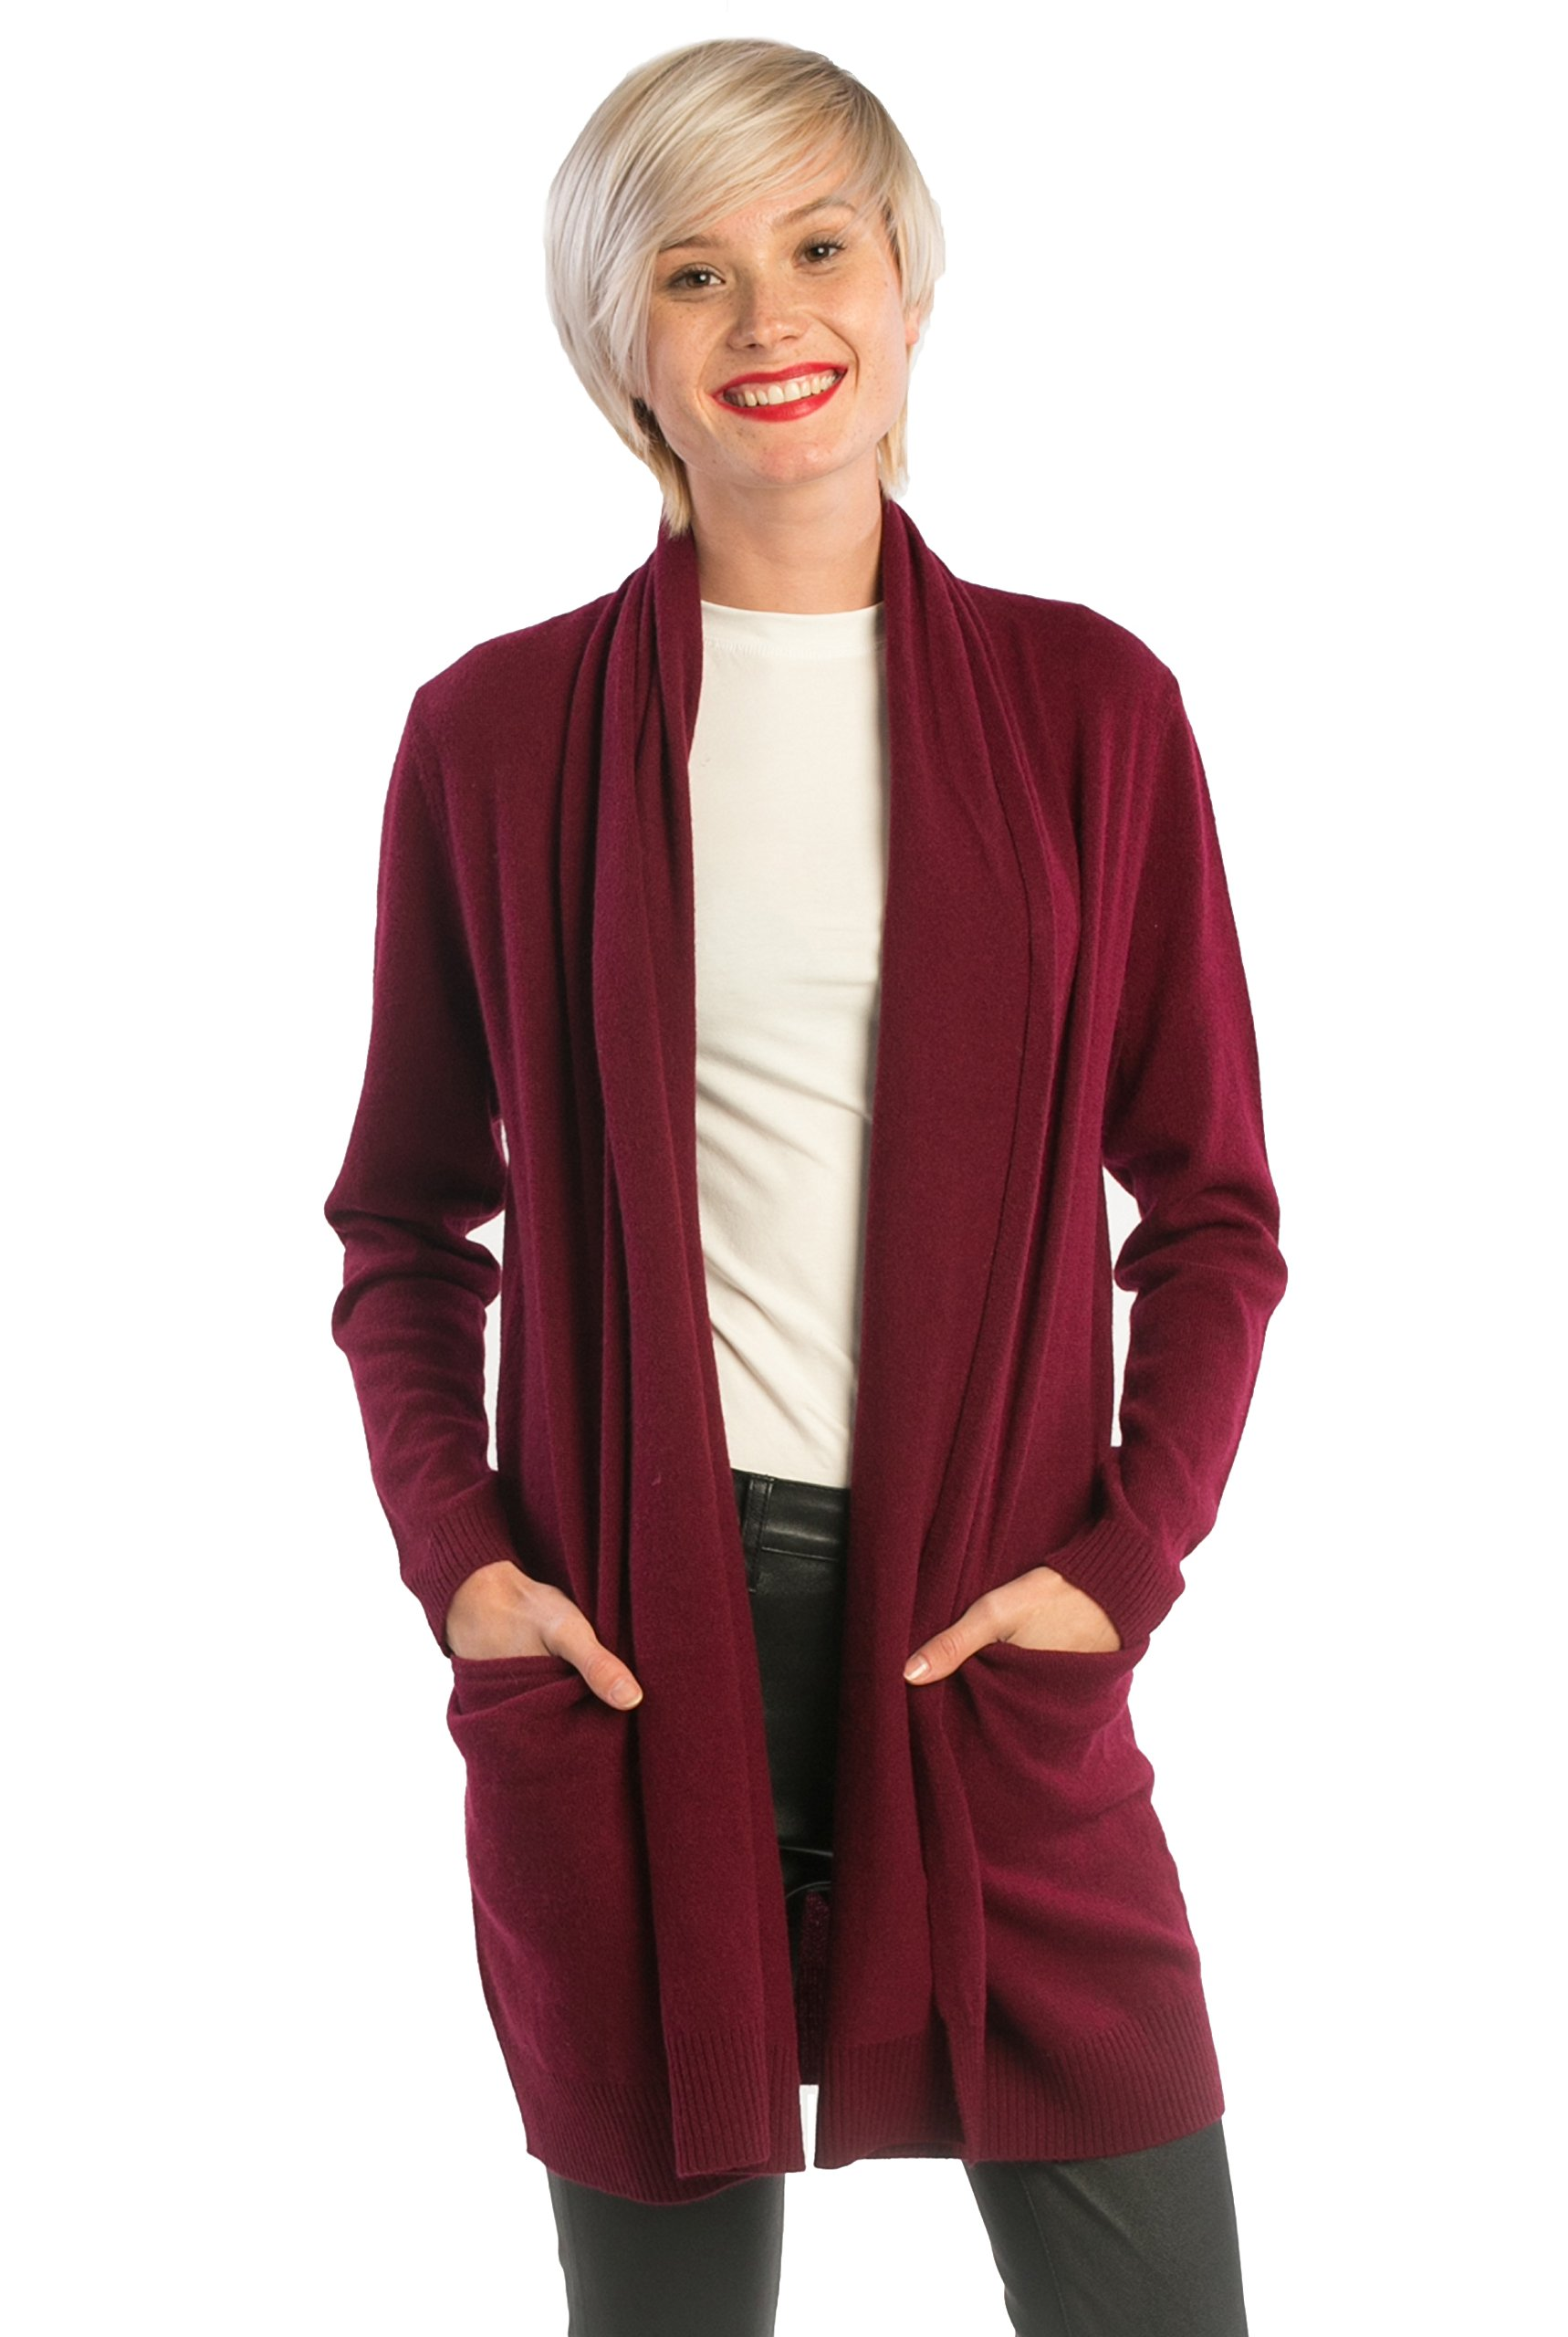 cashmere 4 U 100% Cashmere Open Front Cardigan Coat For Women